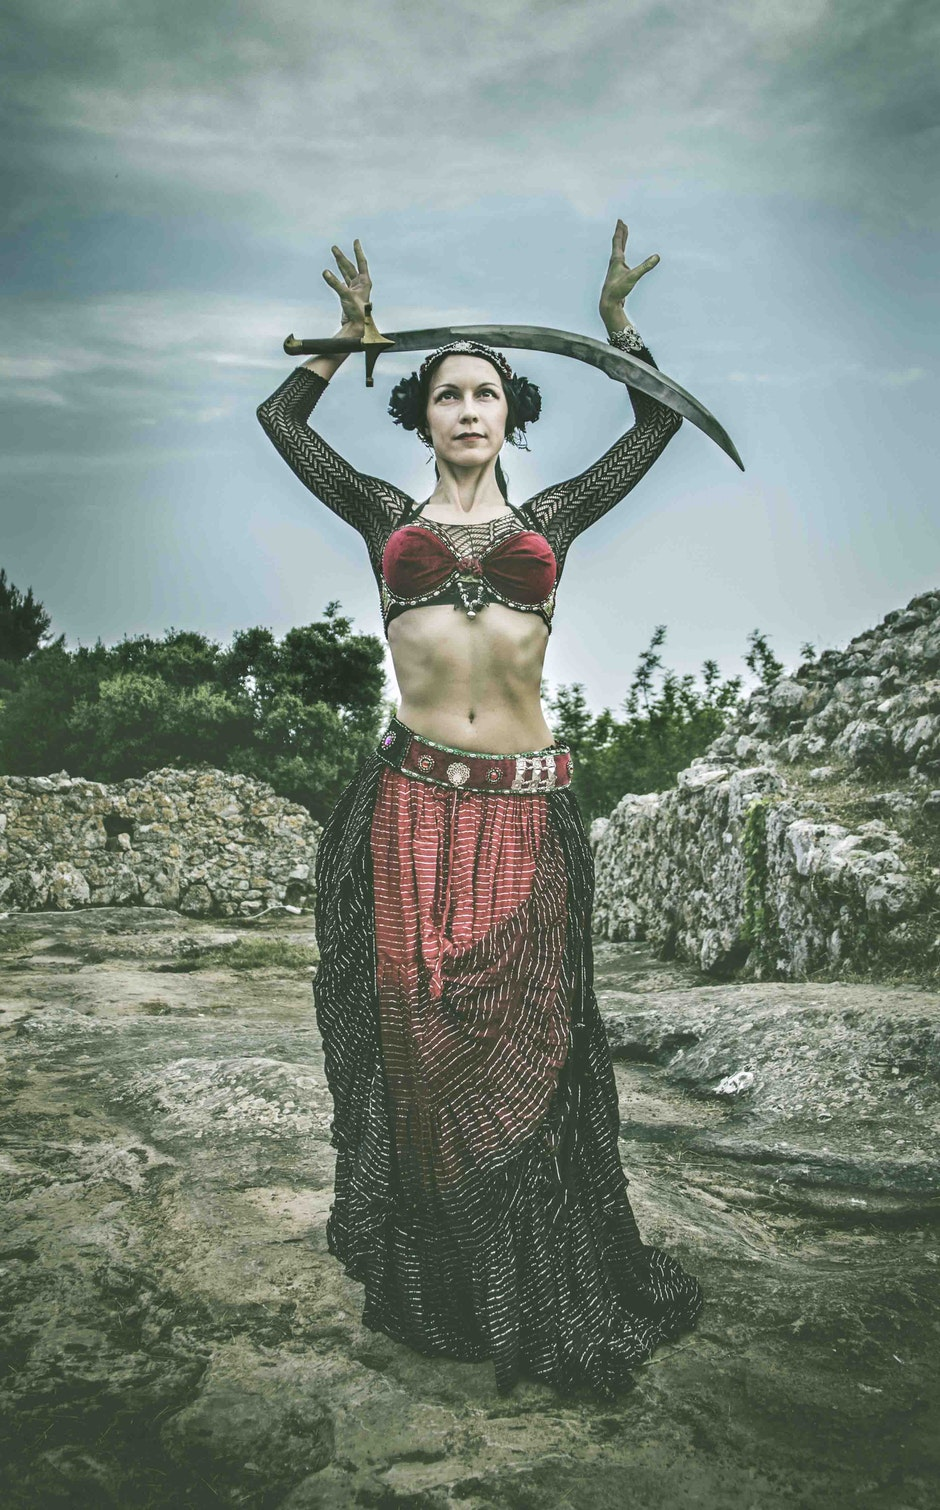 Woman Wearing Black and Red Dress Holding Sword Standing on Rock Surface during Day Time